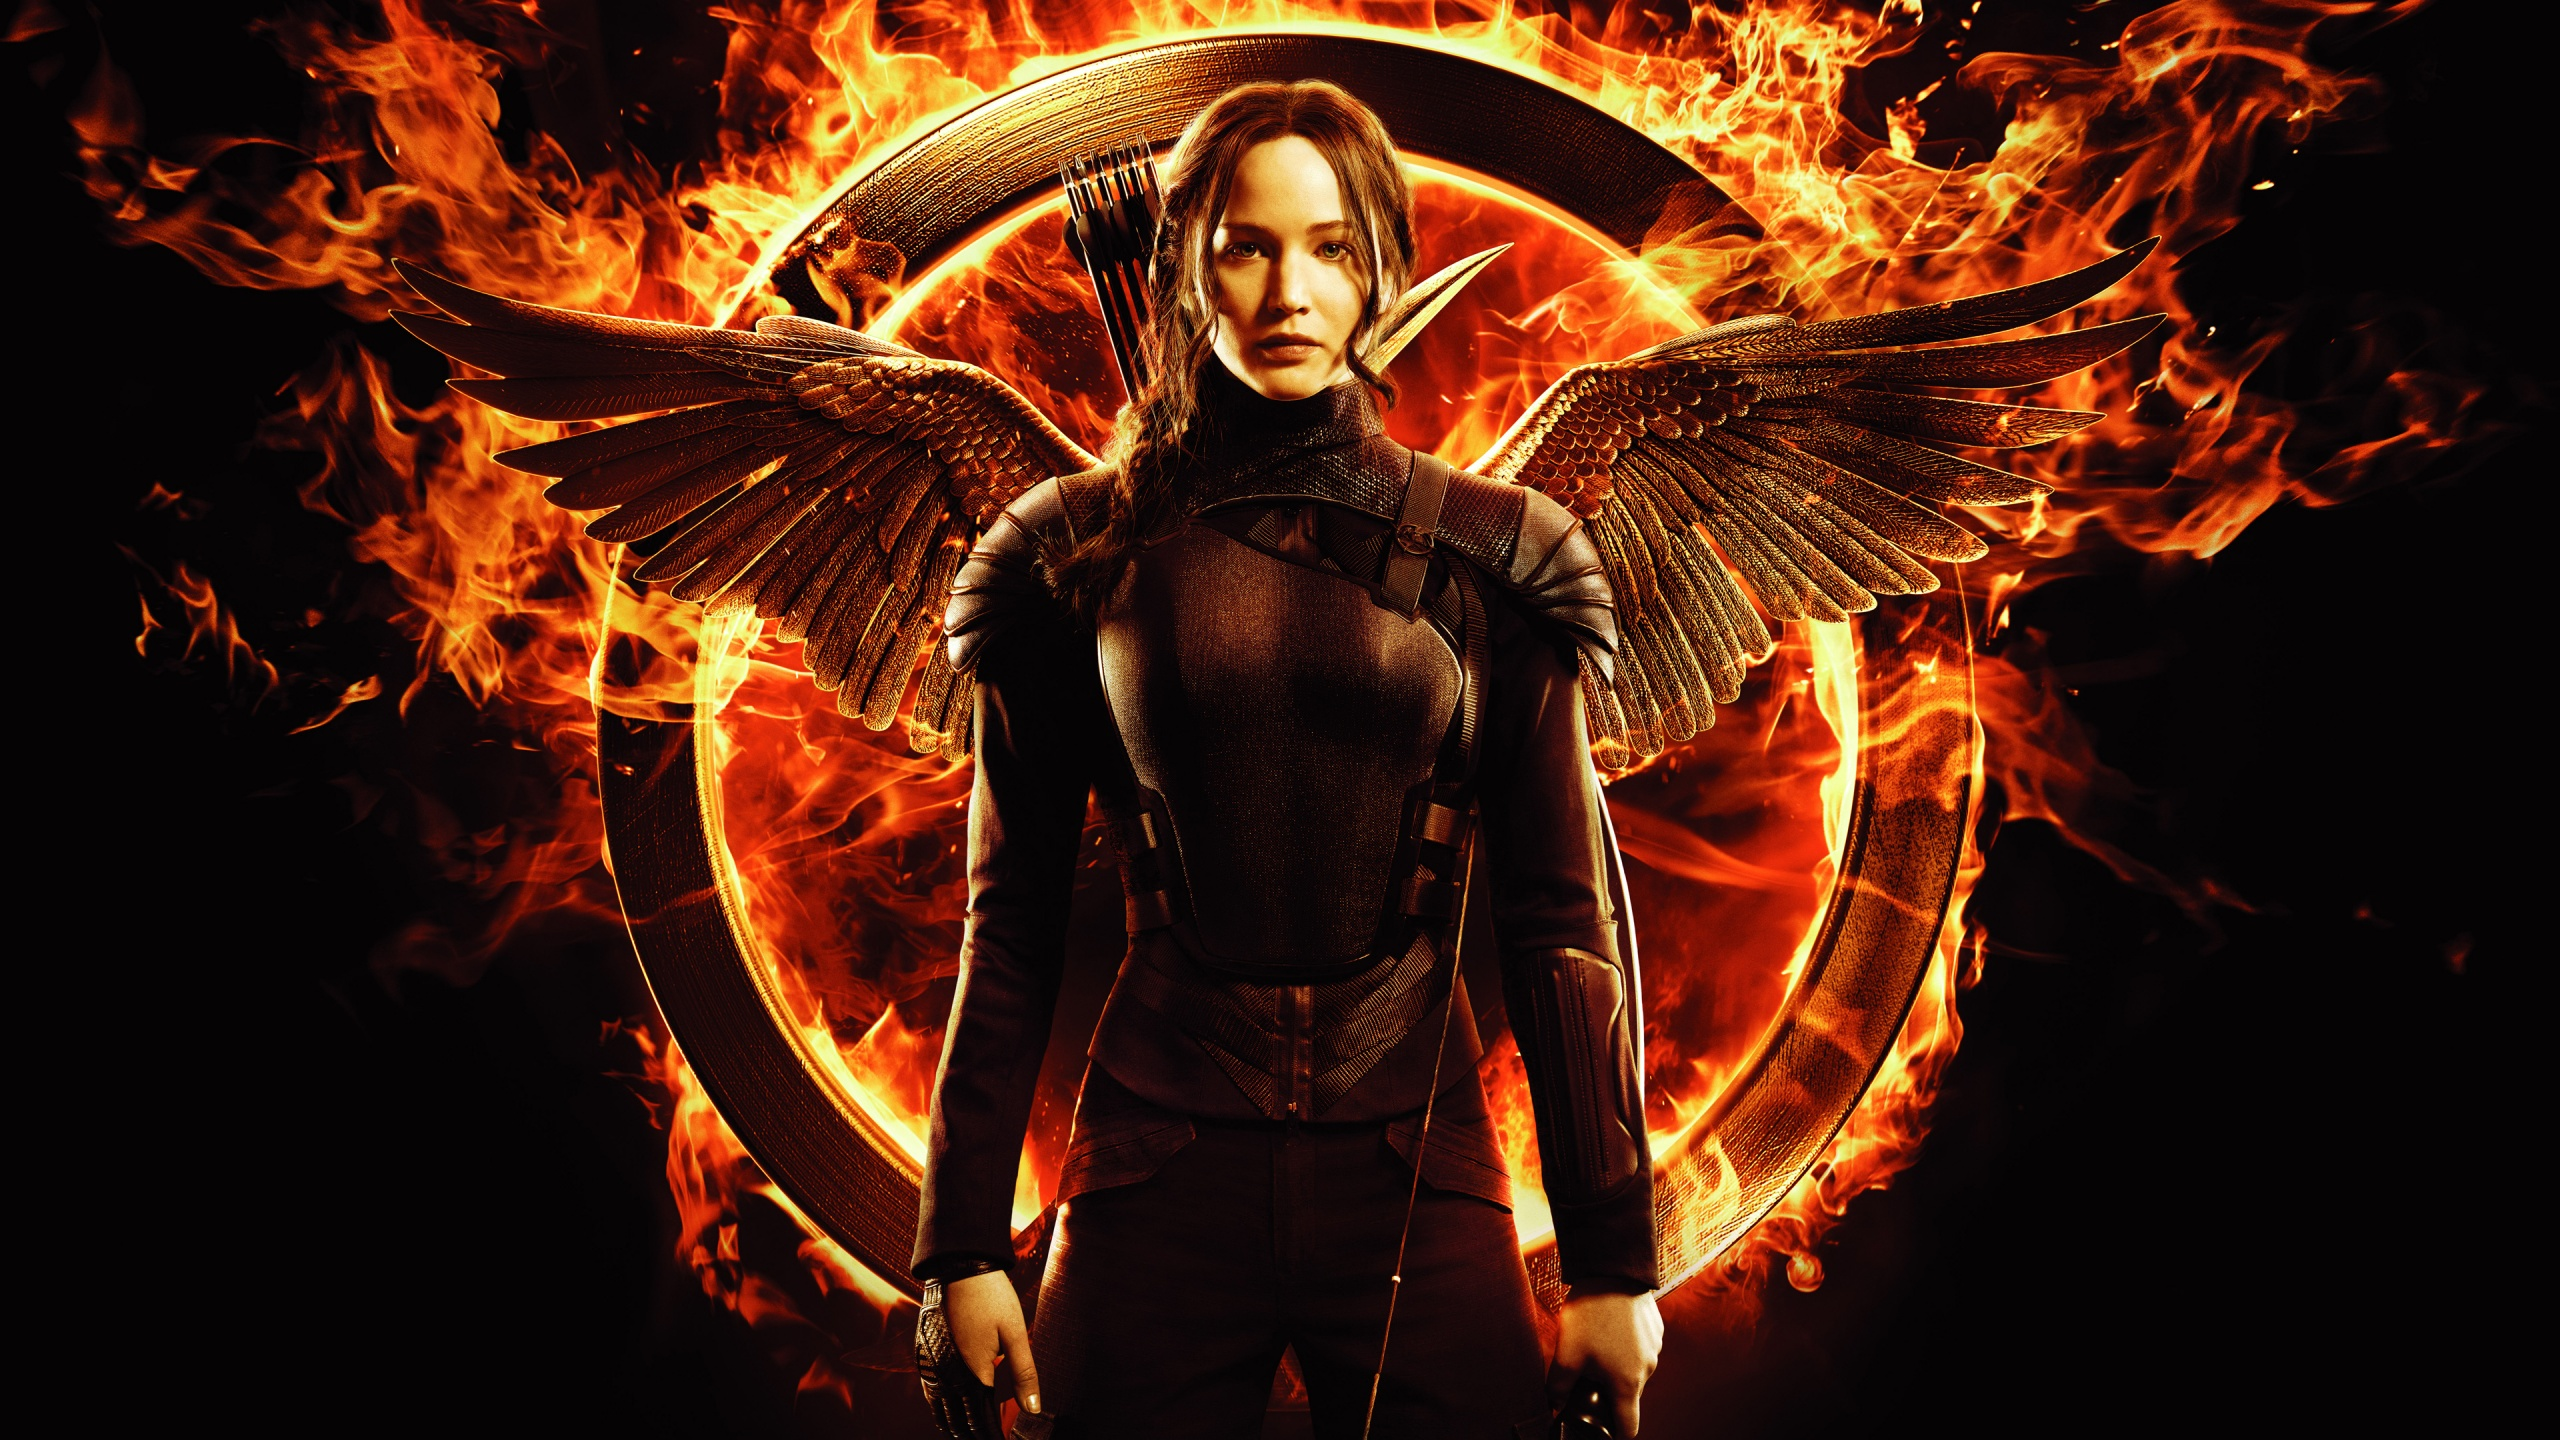 Lawrence in Hunger Games Mockingjay Wallpapers HD Wallpapers 2560x1440